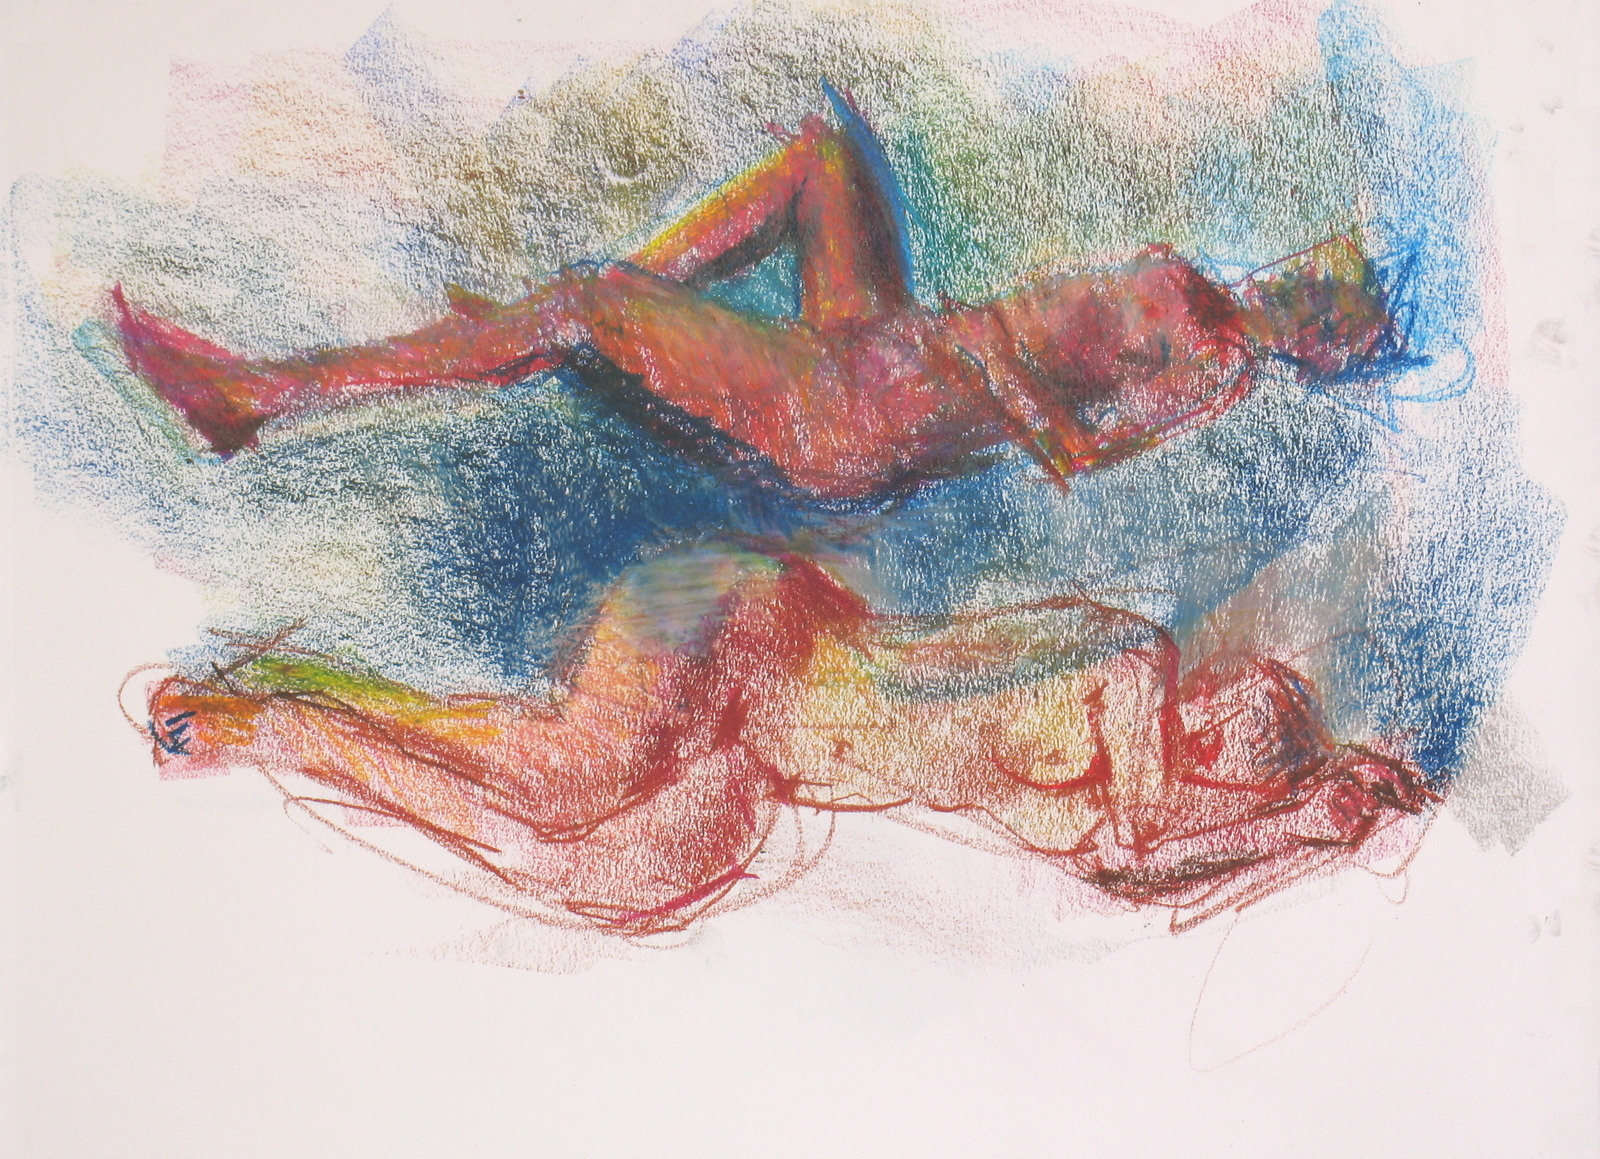 """back to back  2016  wax crayon  24"""" x 18""""  Two 20-minute poses, leaving out the bench and so on. I'm thinking about turning this drawing on its side for a couple of dancers or floating people."""